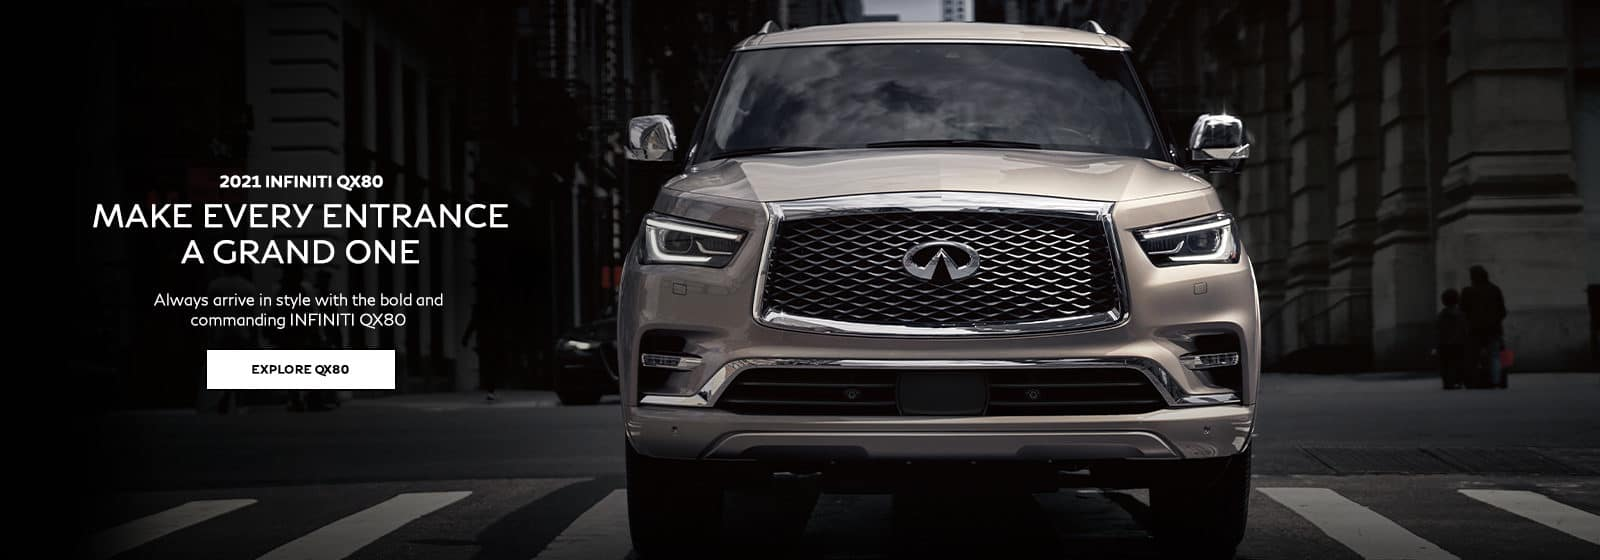 2021 INFINITI QX80. Make Every Entrance a Grand One. Always arrive in style with the bold and commanding INFINITI QX80. Explore QX80.